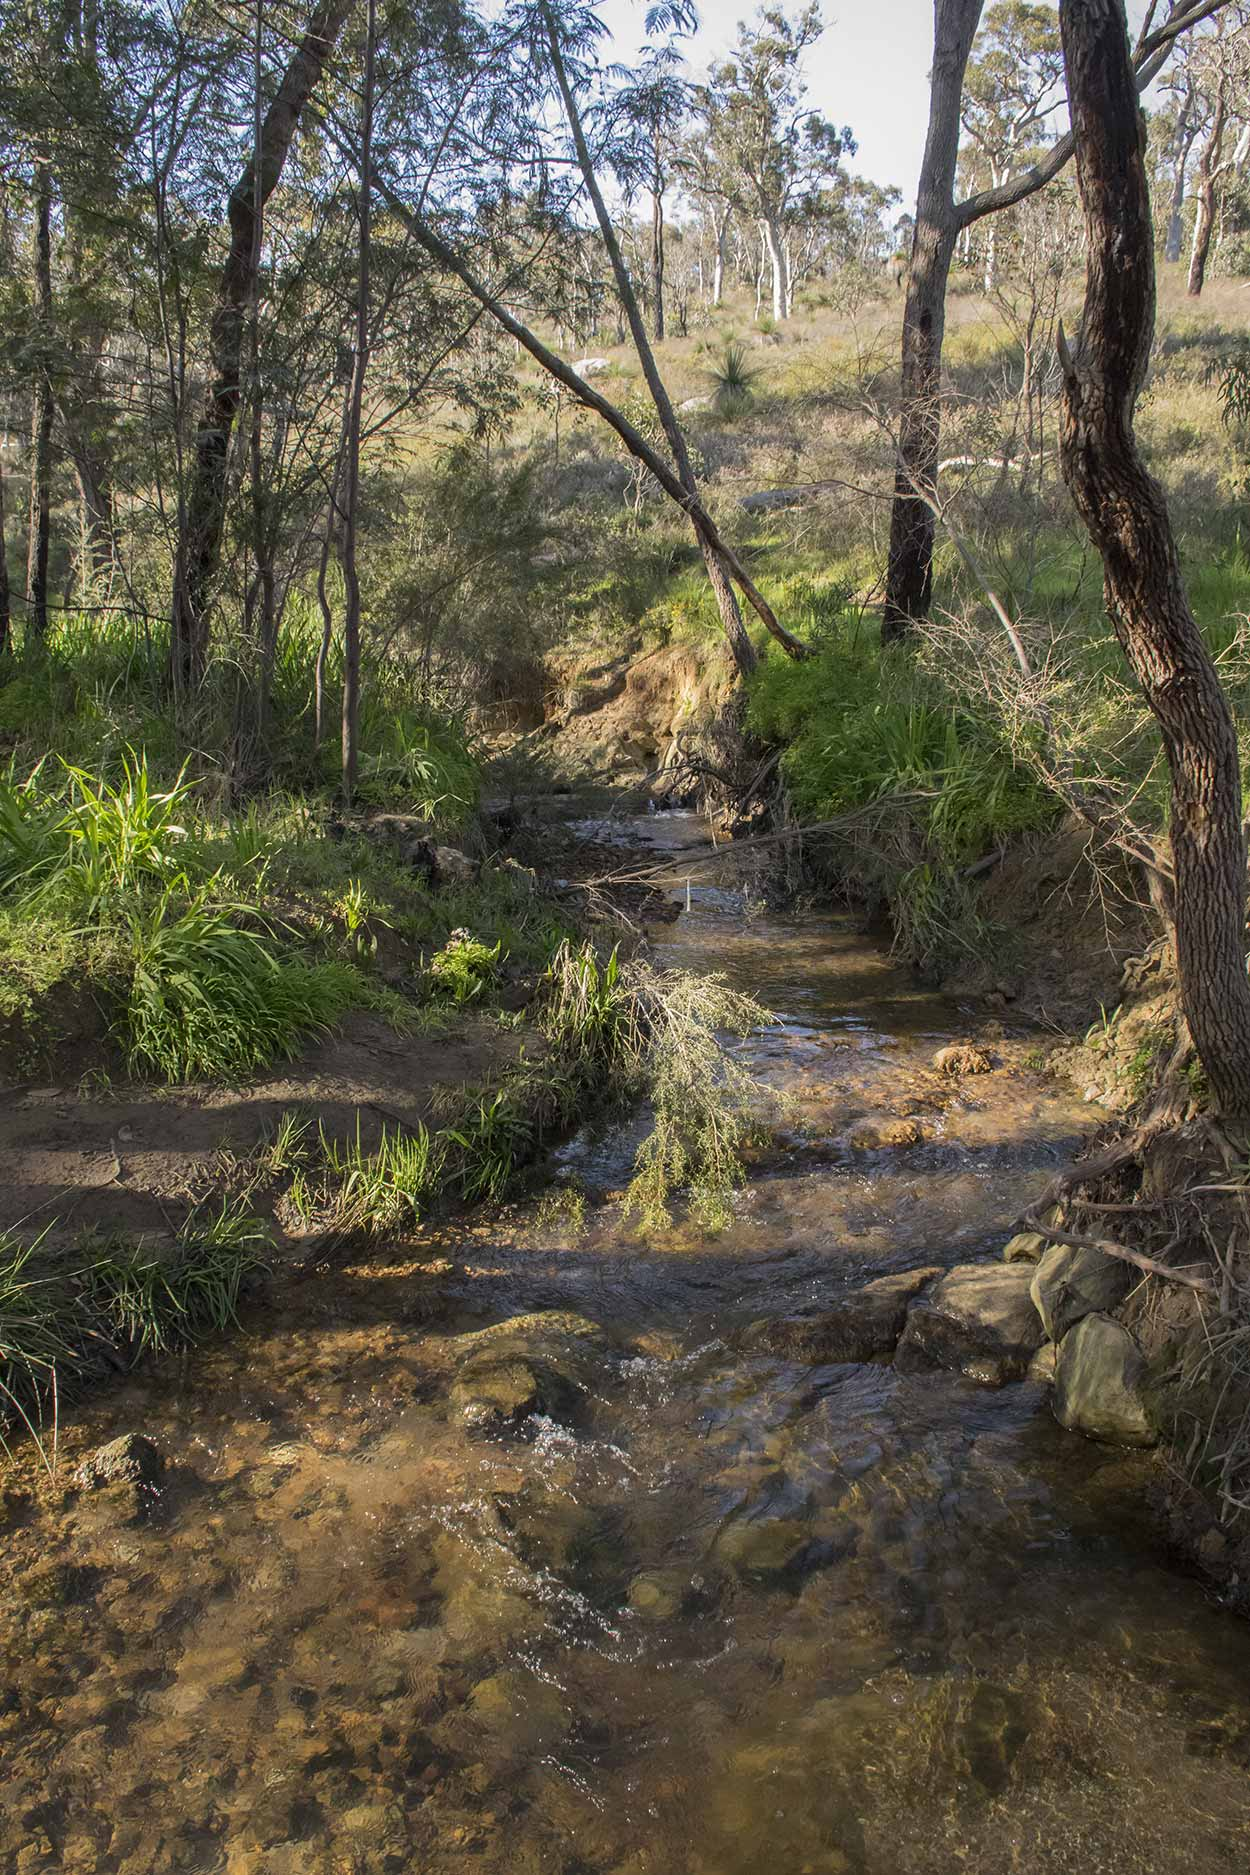 Babbling creek in Whistlepipe Gully, Mundy Regional Park, Perth, Western Australia